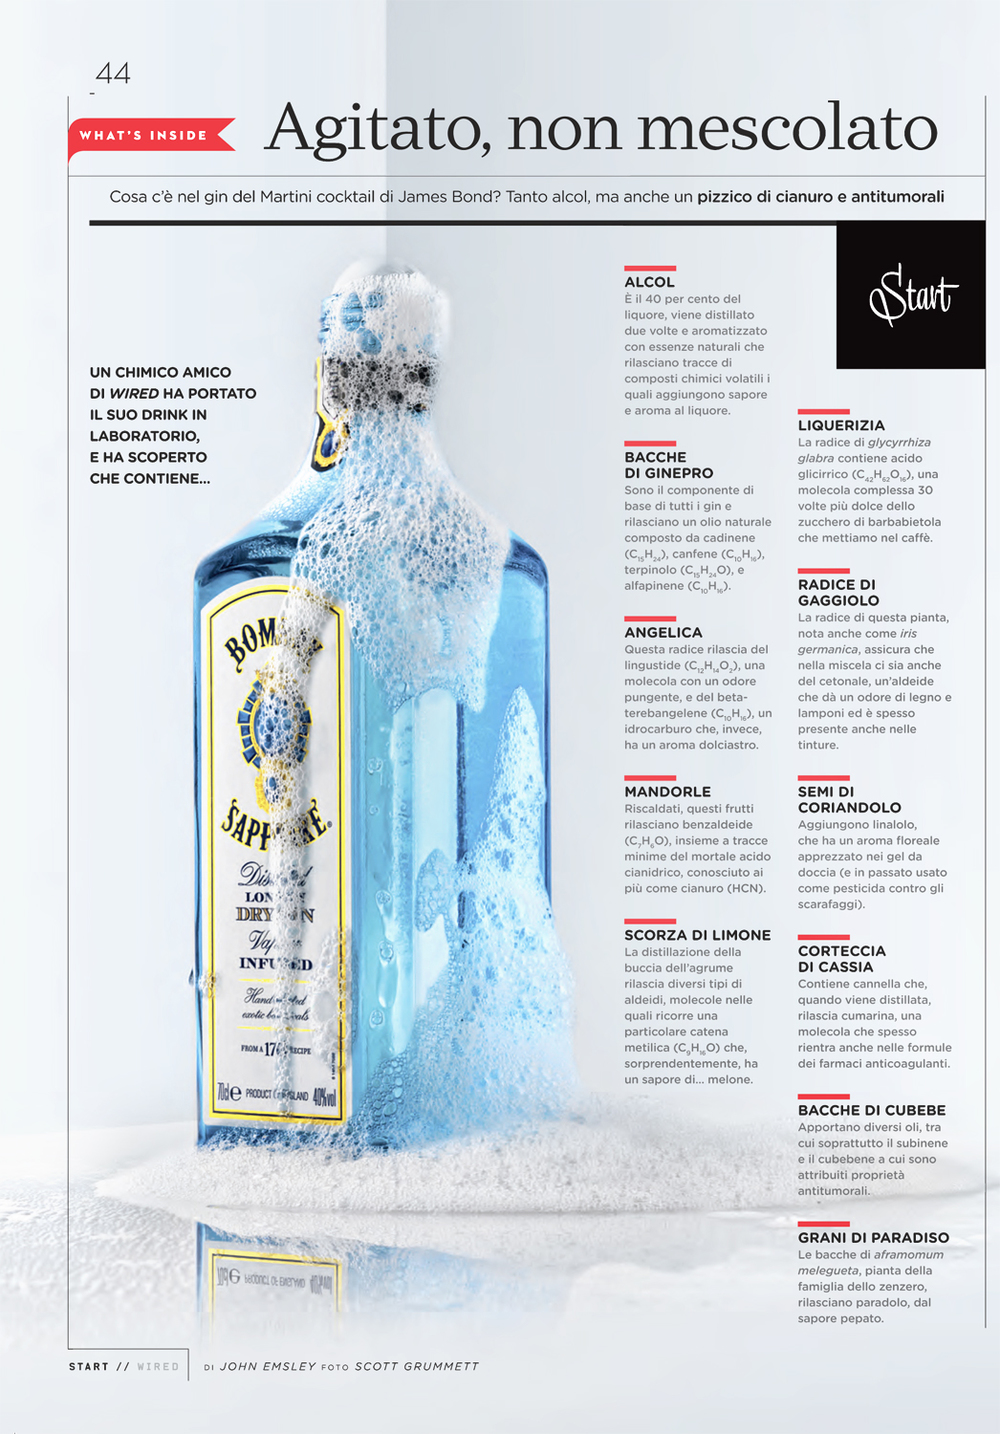 Wired Italia: What's Inside Bombay Sapphire